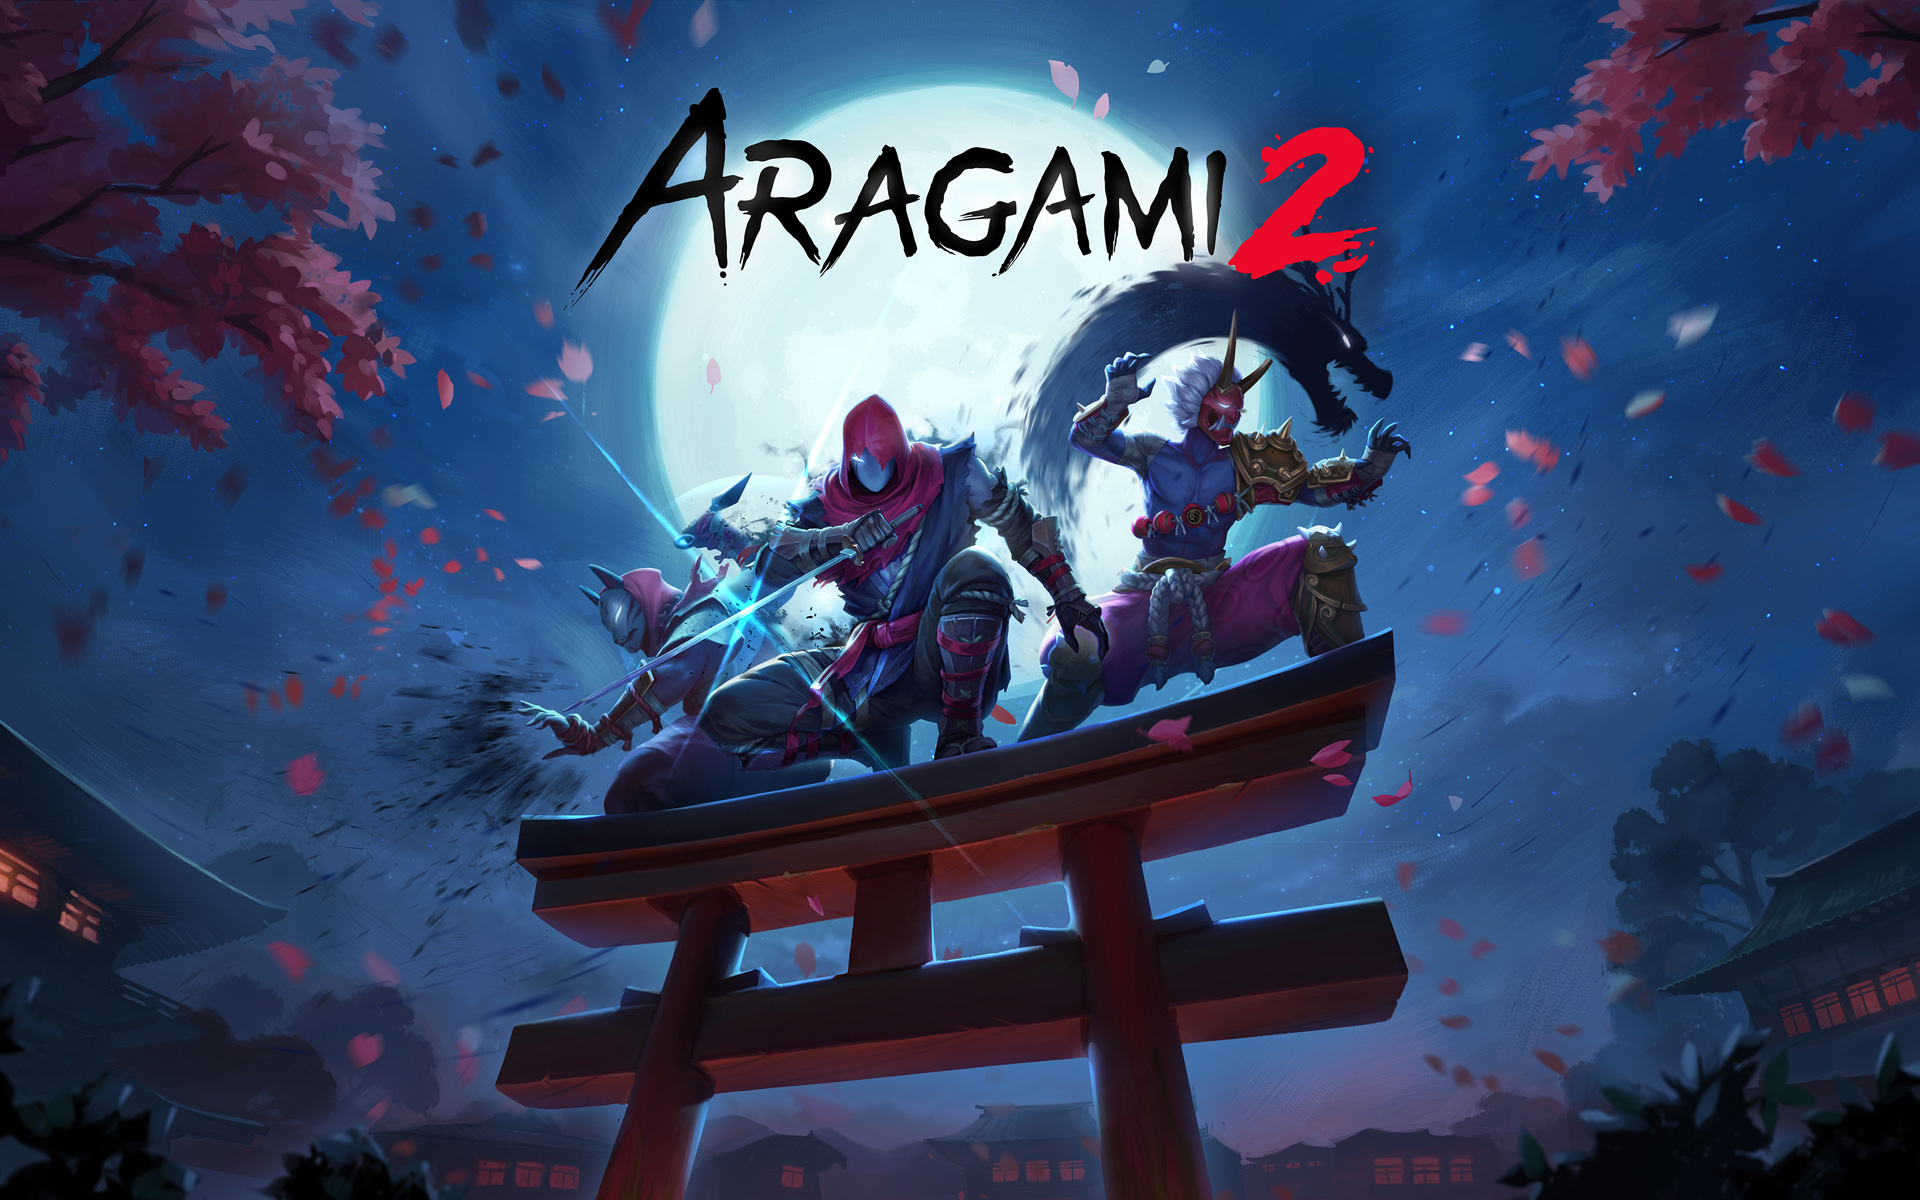 Free Aragami 2 Wallpaper in 1920x1200